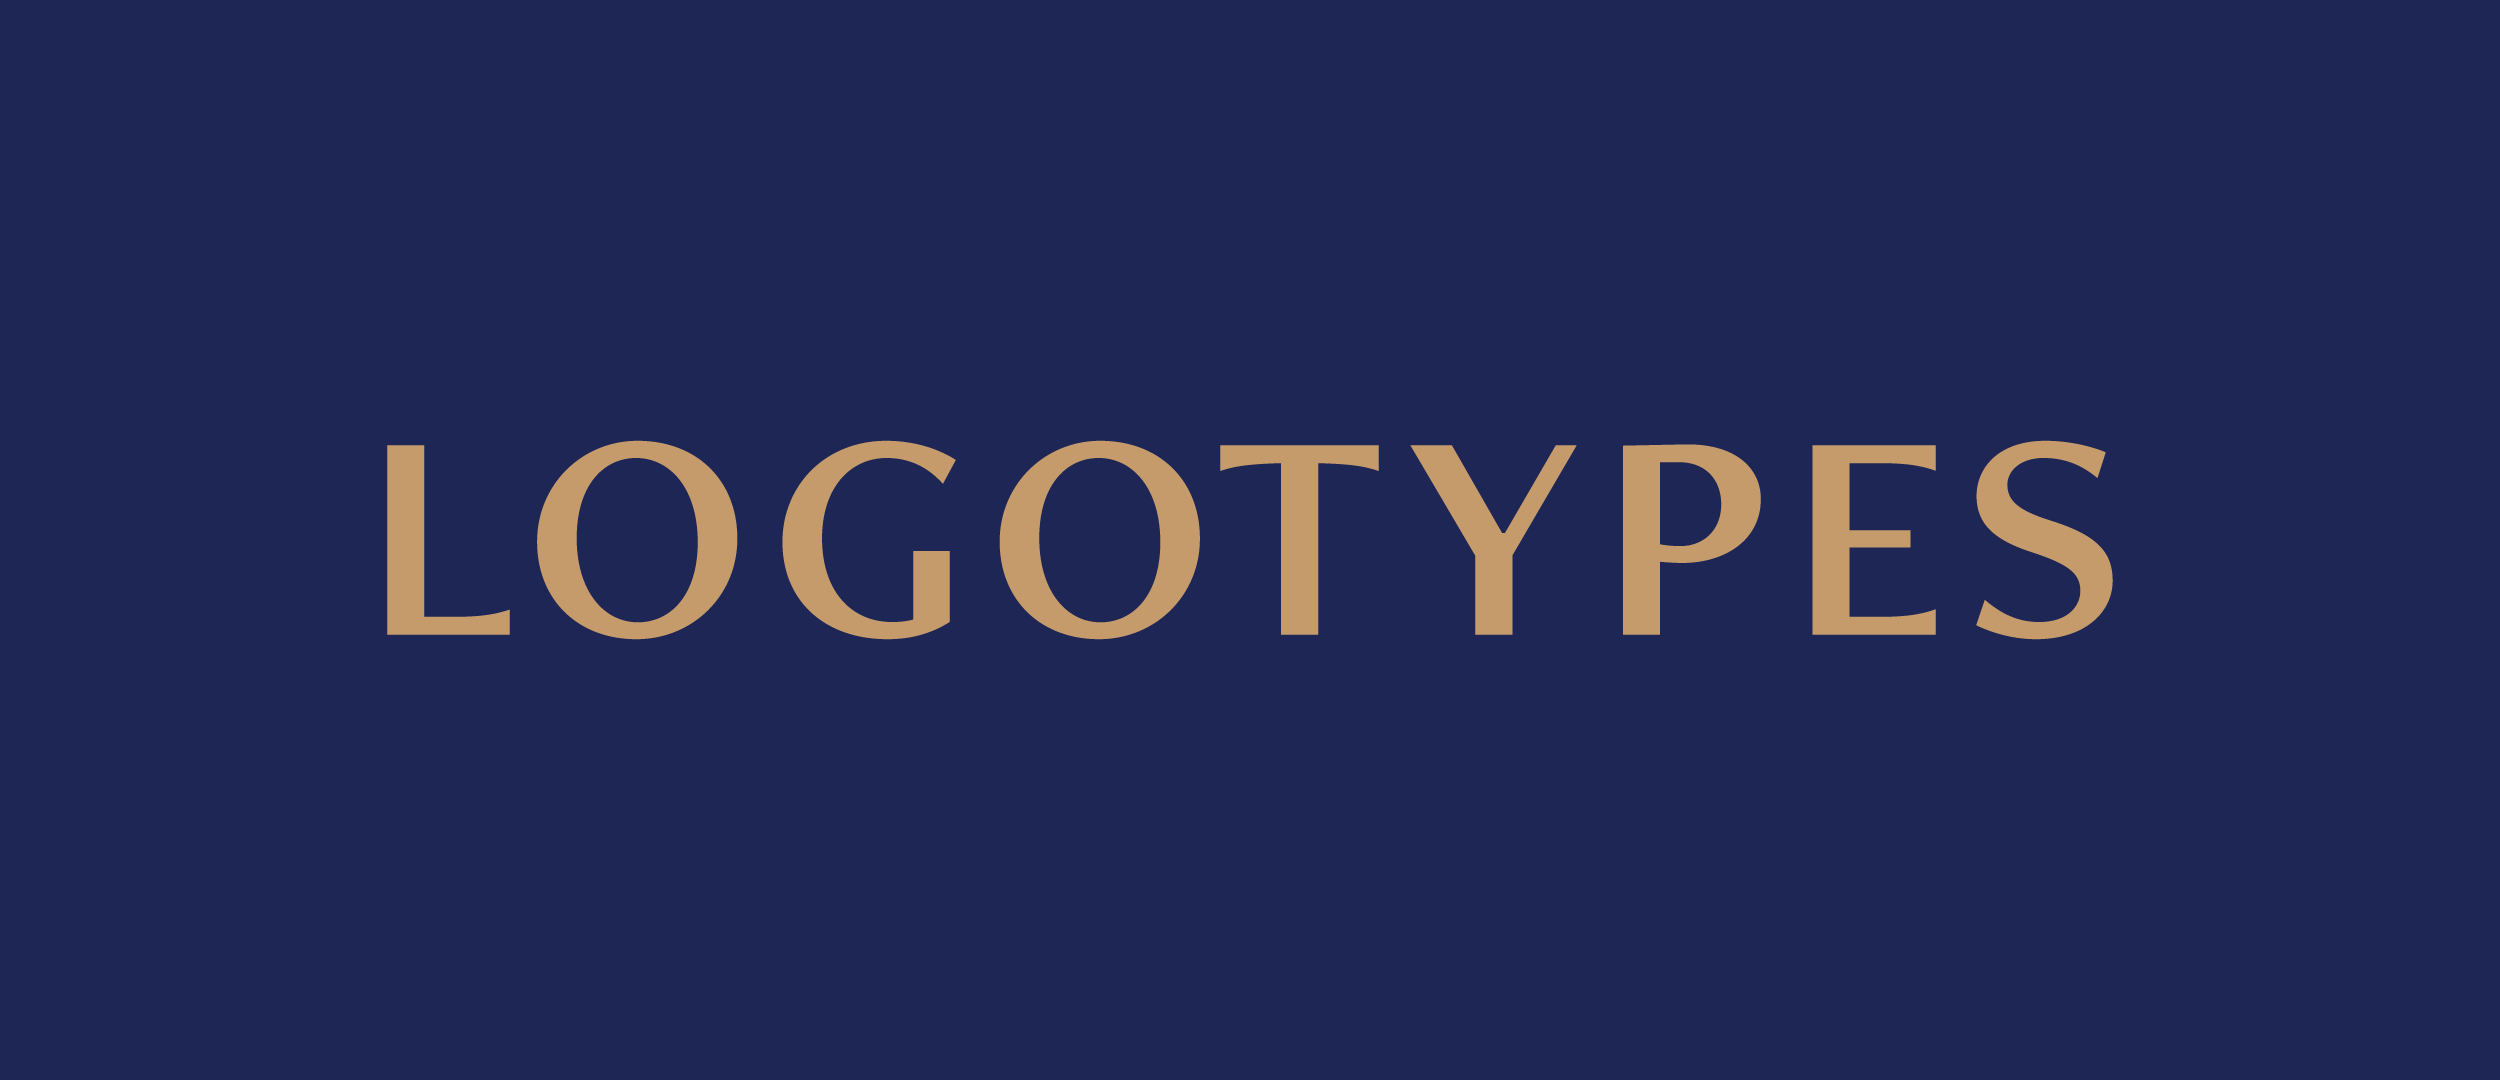 Logotypes.png